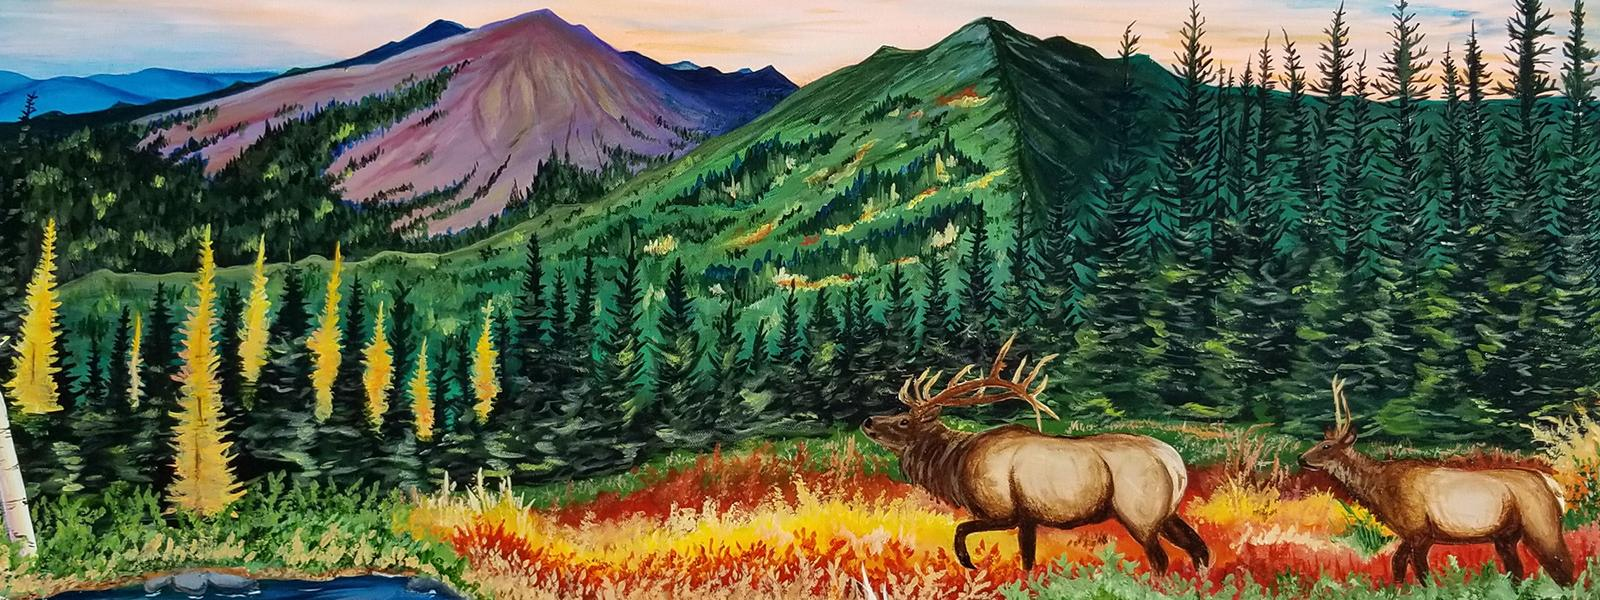 Winning illustration of elk walking towards a lake with mountains in the background